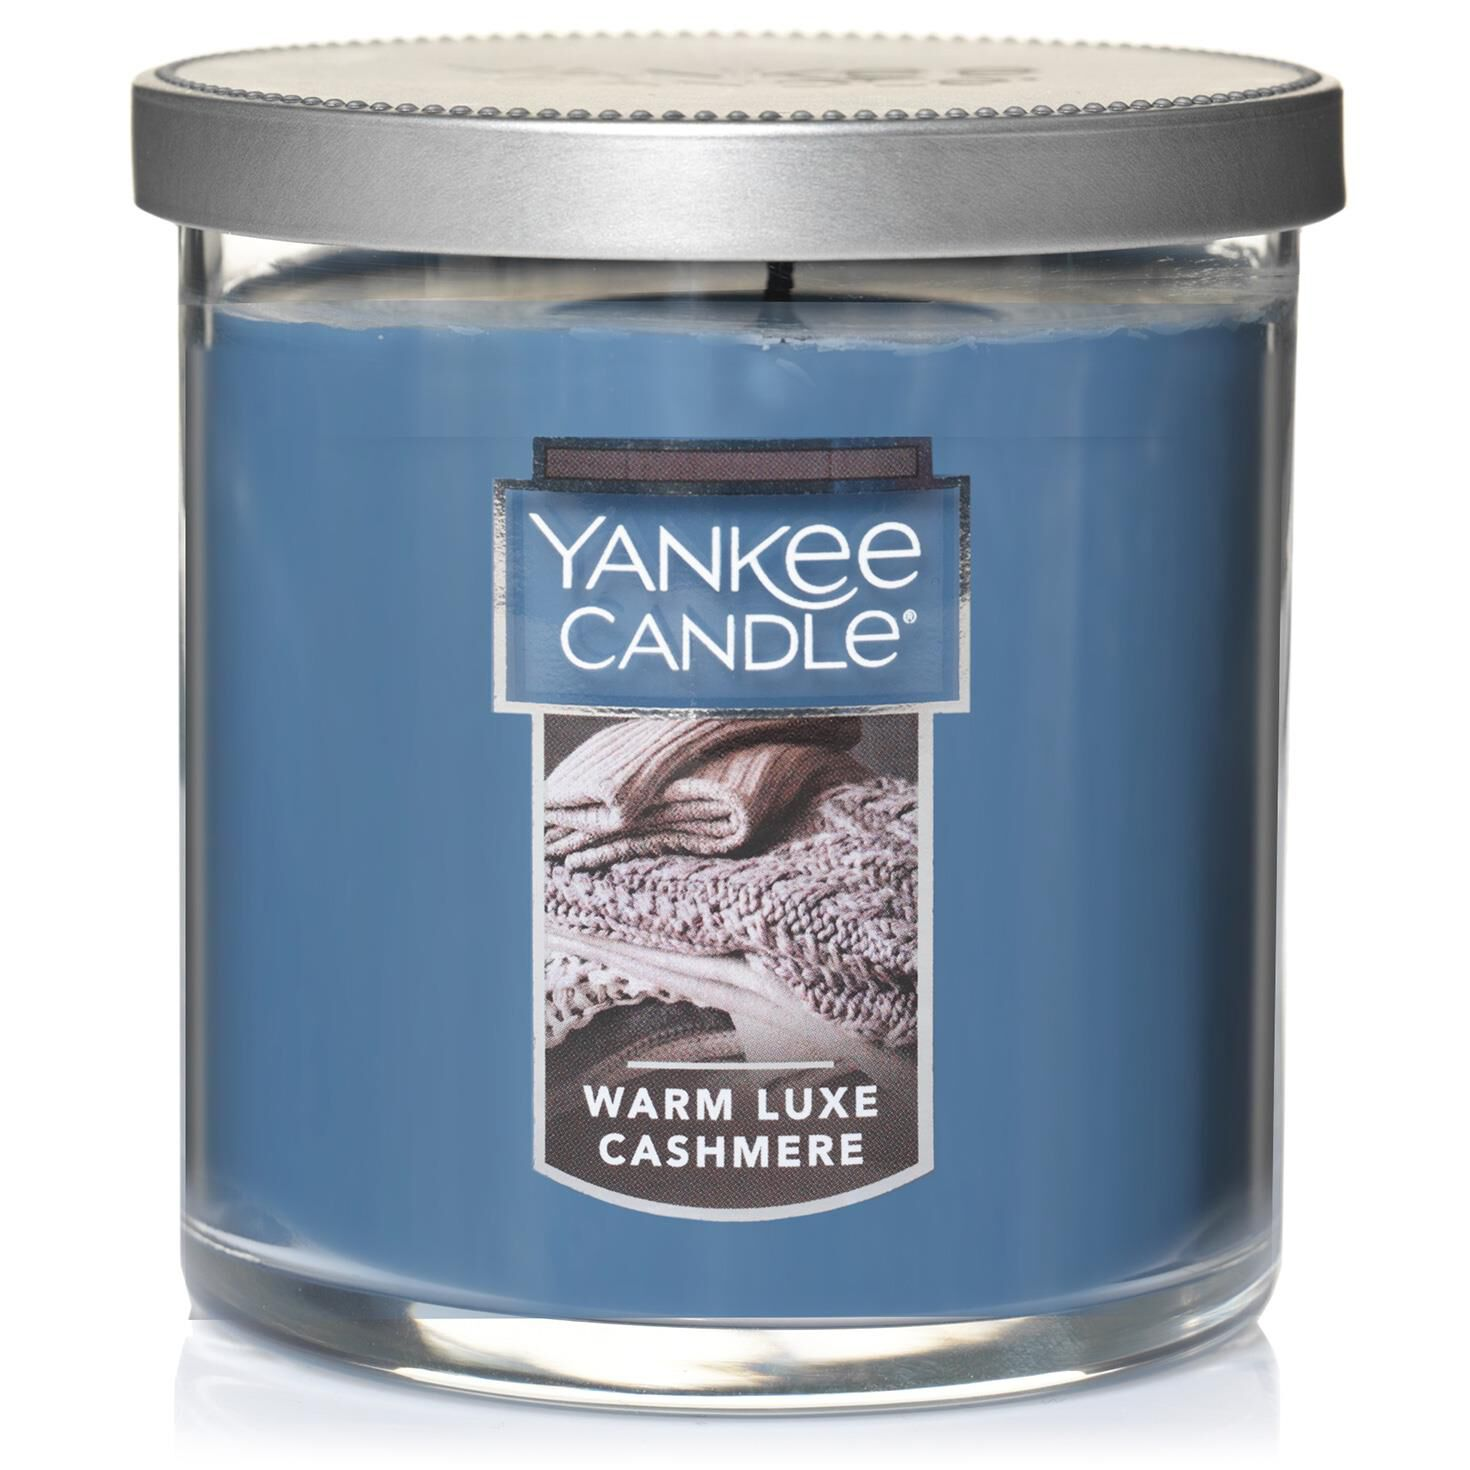 Warm Luxe Cashmere Small Tumbler Candle by Yankee Candle